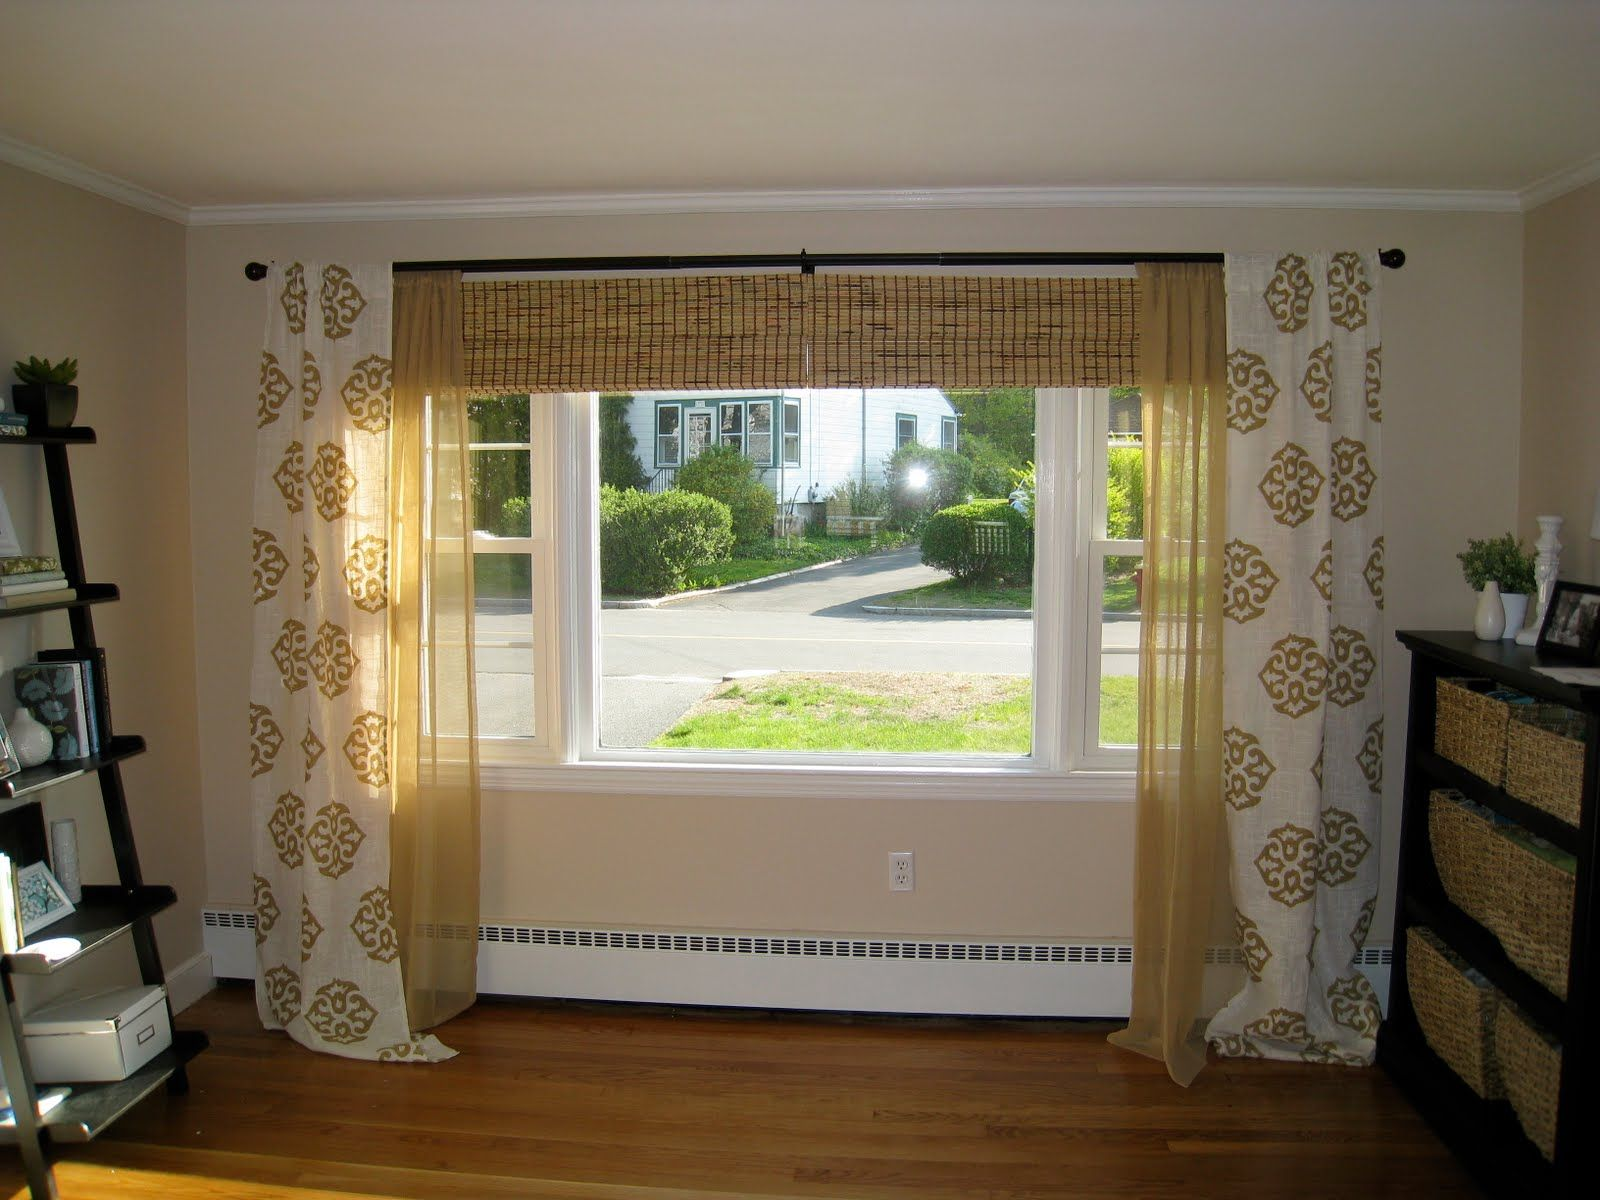 of for wondeful ed curtains with interior ideas regard white modern window ex classic large curtain inspirational to windows me a patio